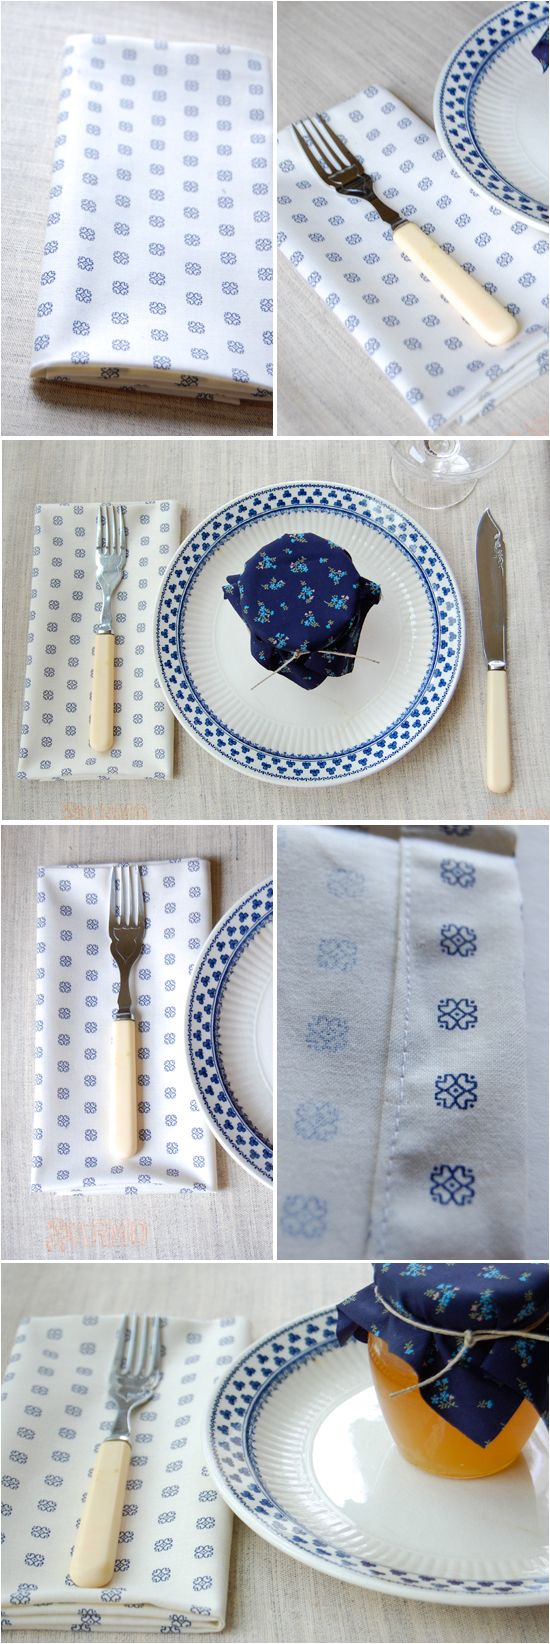 DIY Napkins - doing this with brightly colored fabrics